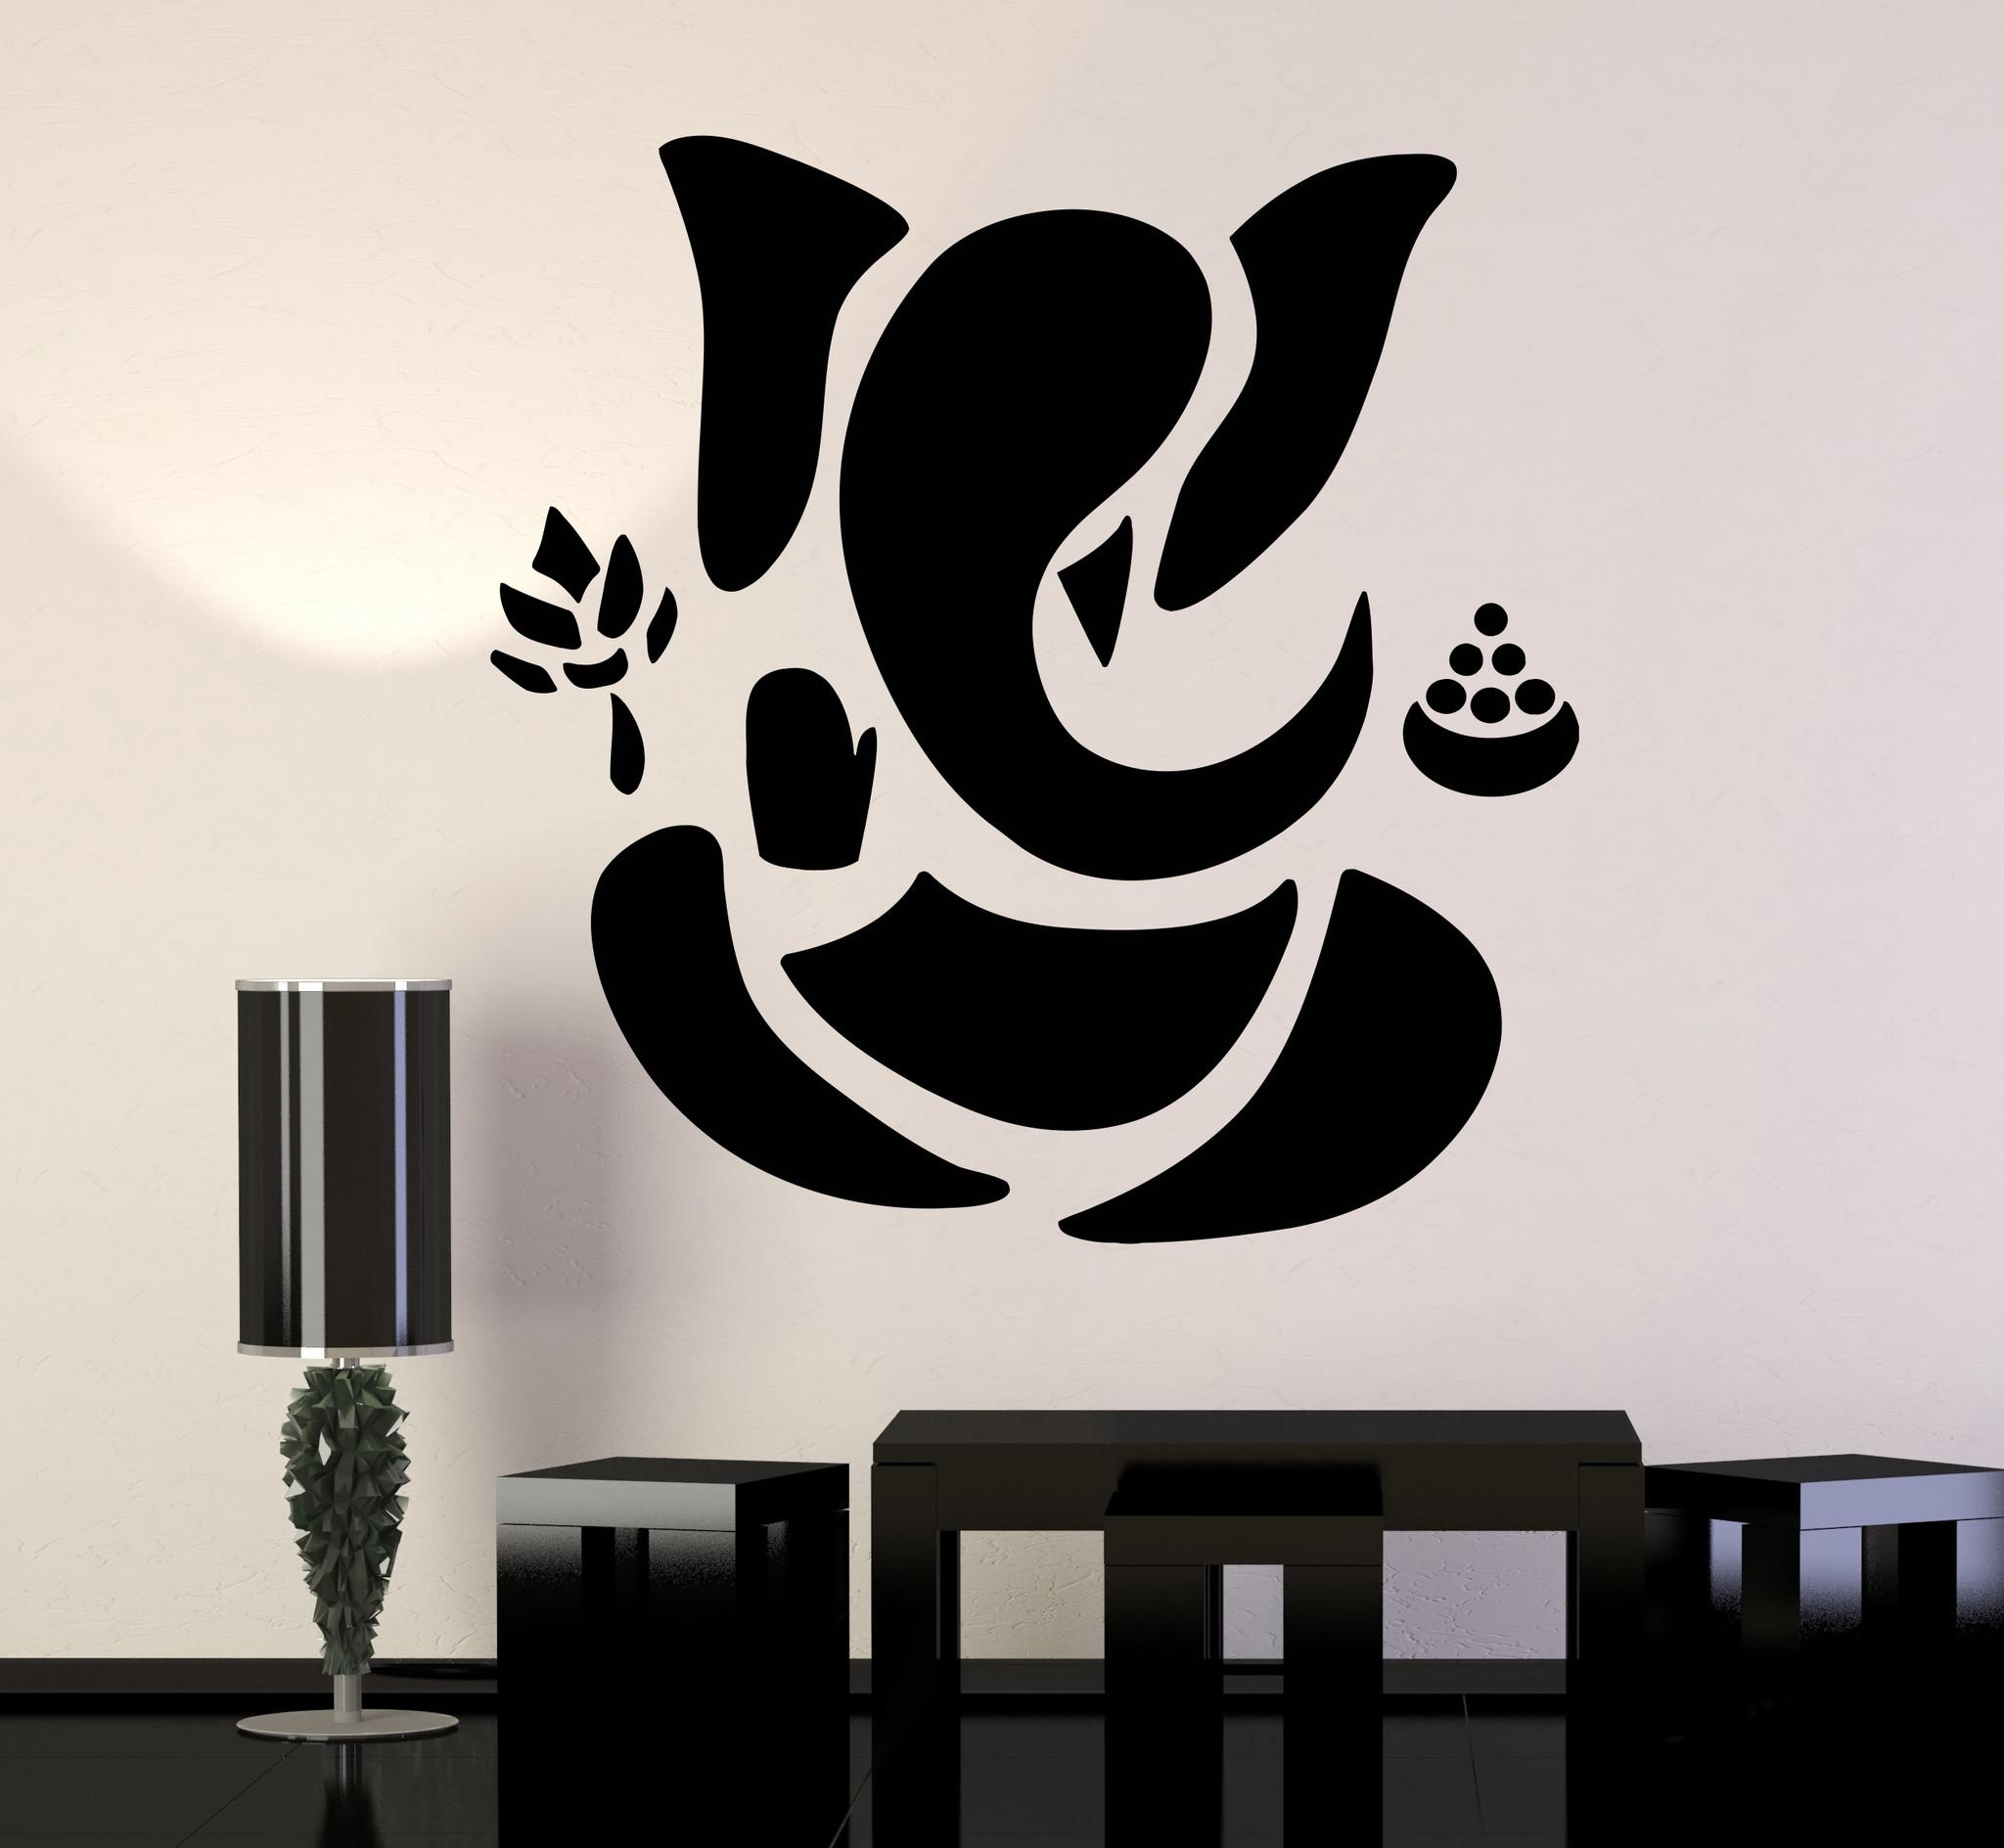 Stupendous Ganesh Canvas Wall Art Wall Room Decor Art Wall Decor Intended For Ganesh Wall Art (View 10 of 20)